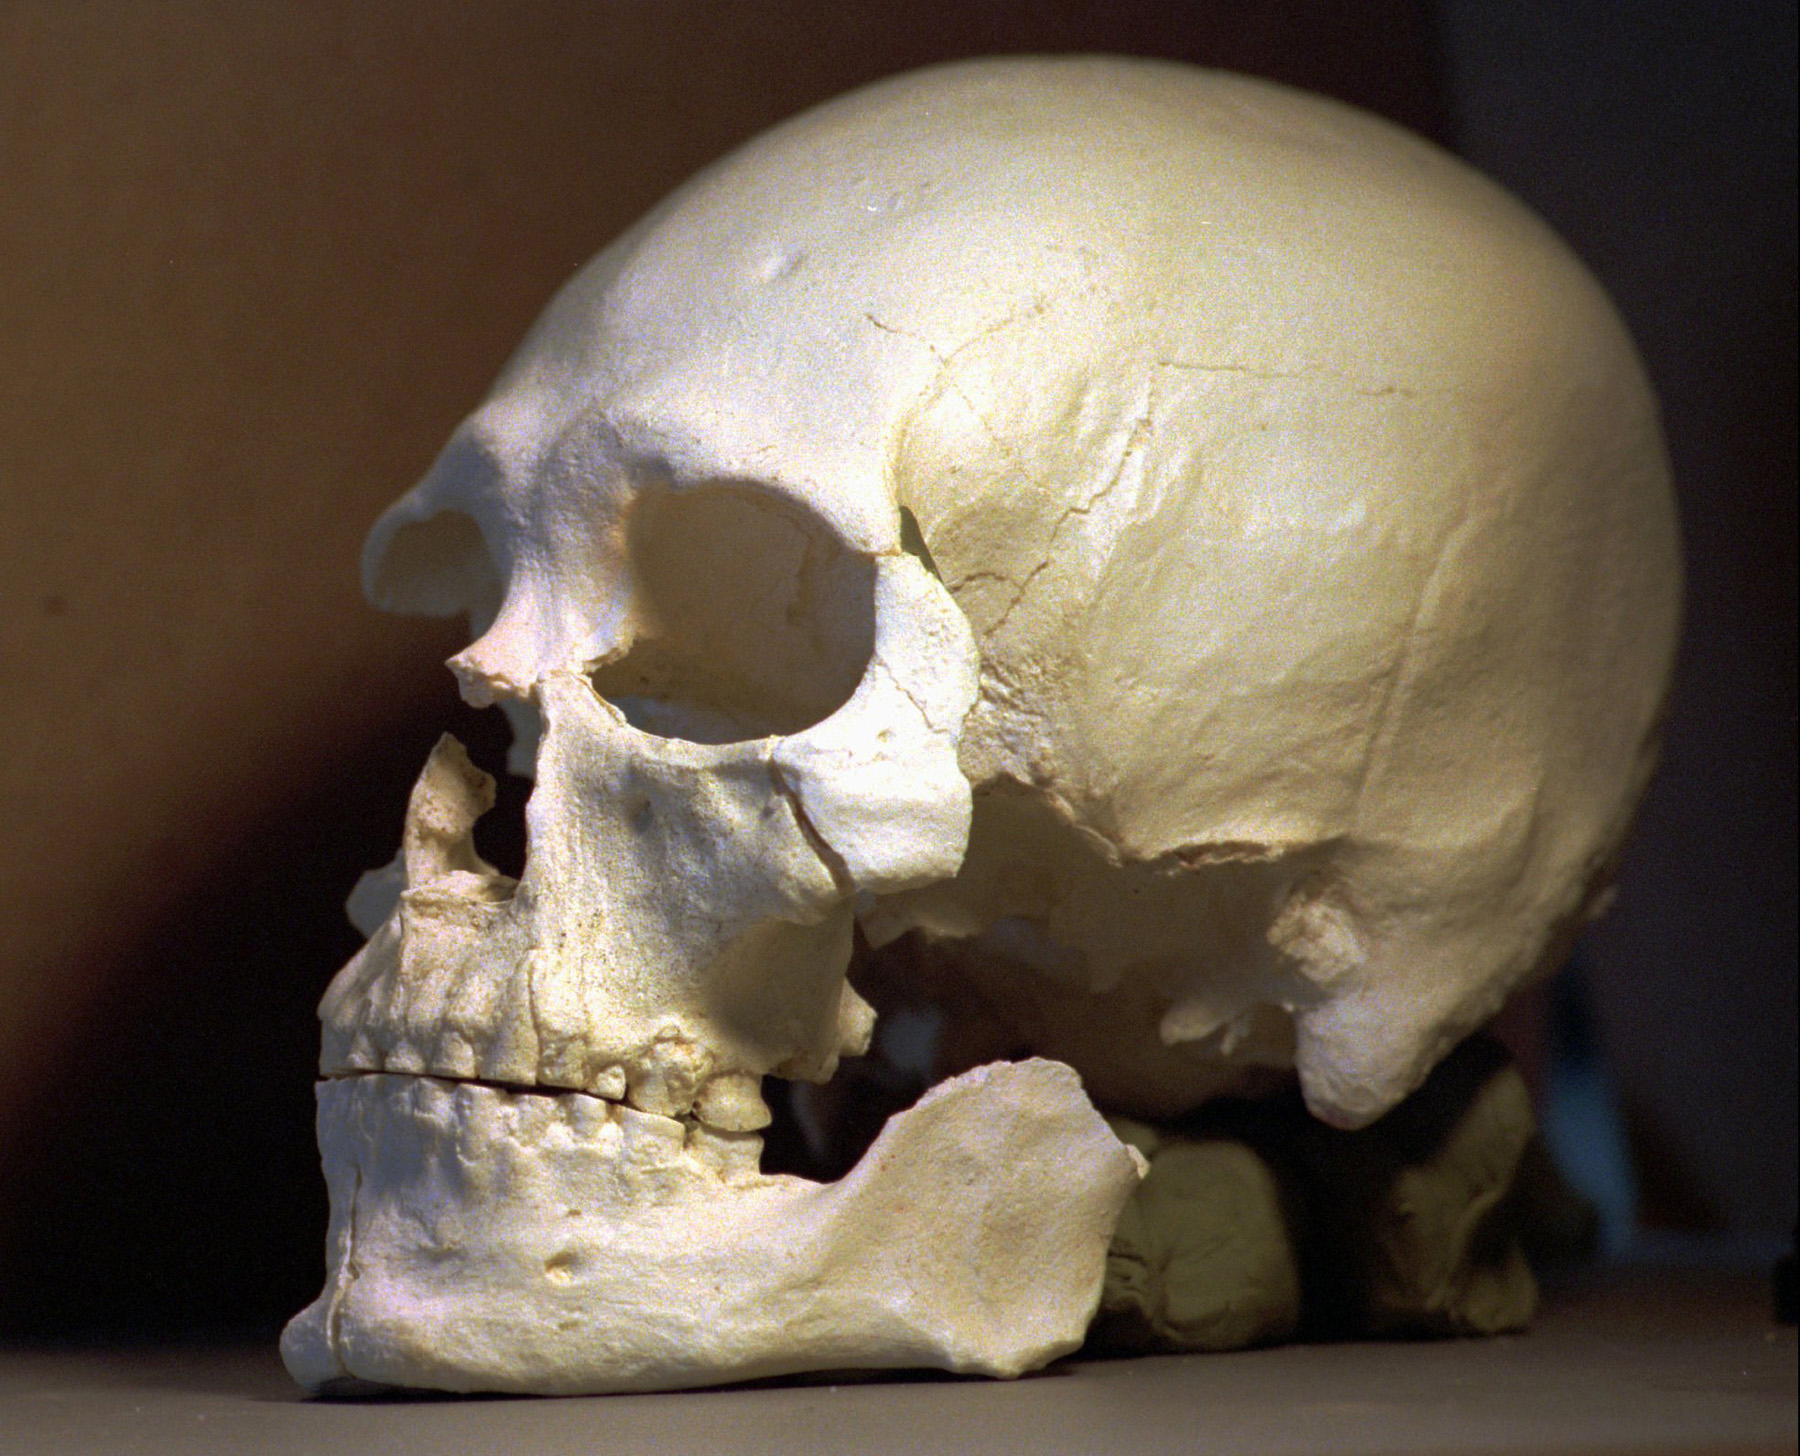 A plastic casting of the skull from the bones known as Kennewick Man, is seen in Richland, Washington, July 24, 1997.